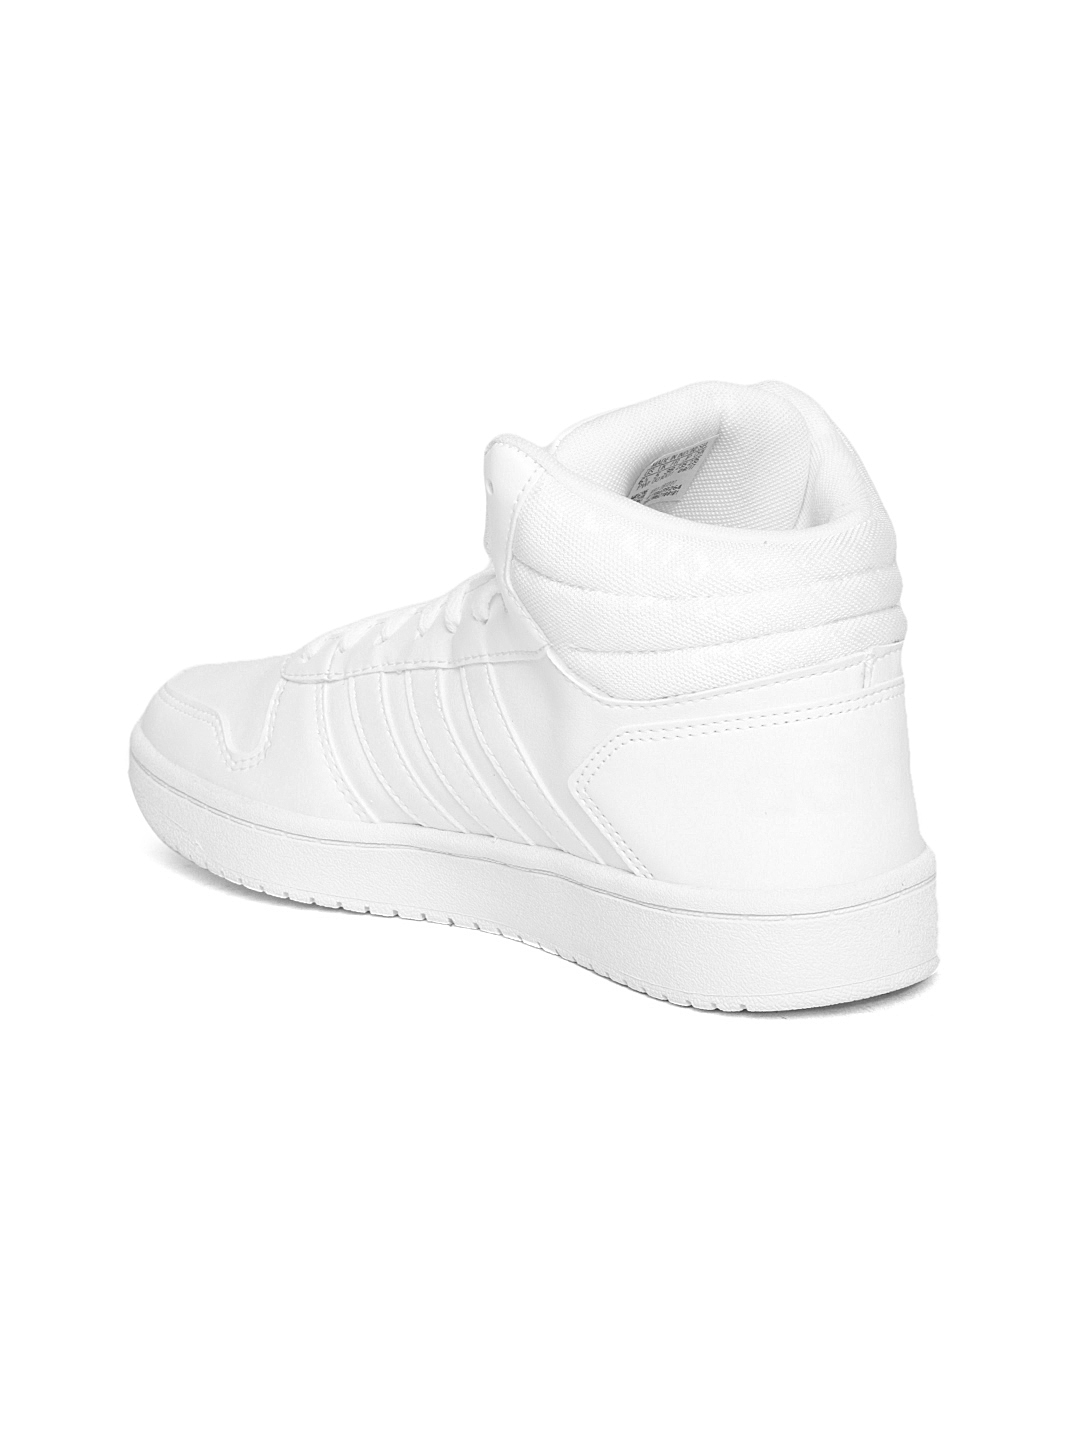 d62e708db86 Buy ADIDAS Women White HOOPS 2.0 MID W Sneakers - Casual Shoes for ...